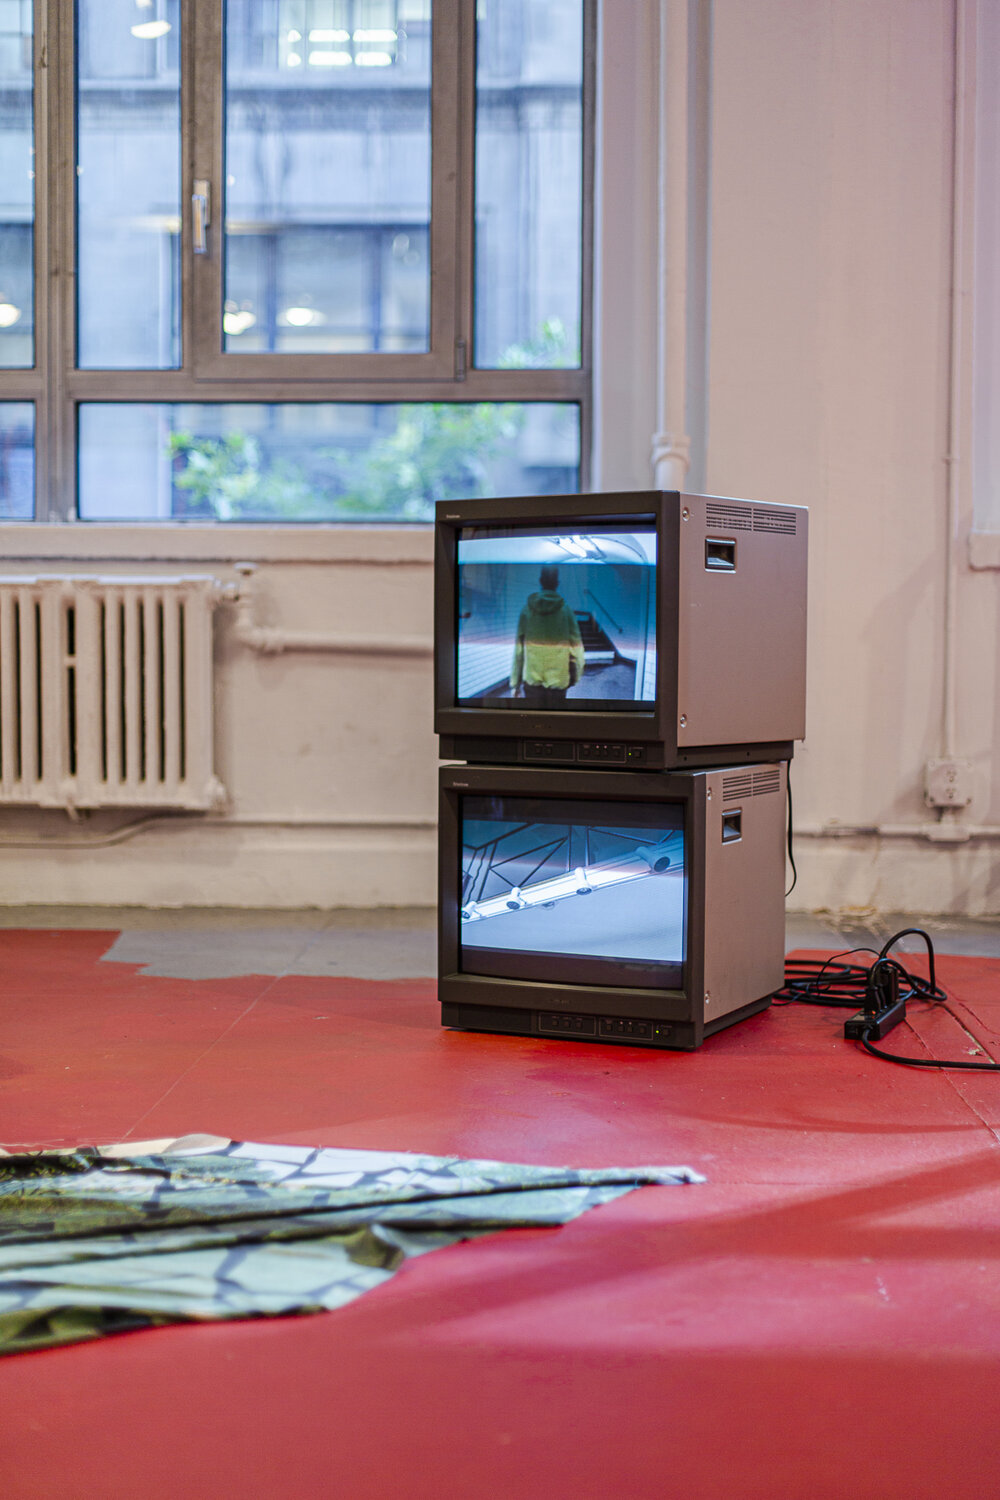 Nicholas Vargelis,  Prise, Interrupteur, Douille , incandescent bulbs, bent electrical pipe, incandescent colored bulbs, outlet, switches, cable, two video cube monitors, video loops, dimensions vary, 2019.   Laetitia Badaut Haussman,  The Silk Prints , 4 Posters, Inkjet on Silk, 55 x 67 in. each, 2019.  Flora Moscovici,  Hula hoop Chack Chack , latex paint on floor, approx. 25 x 40 ft., 2019.